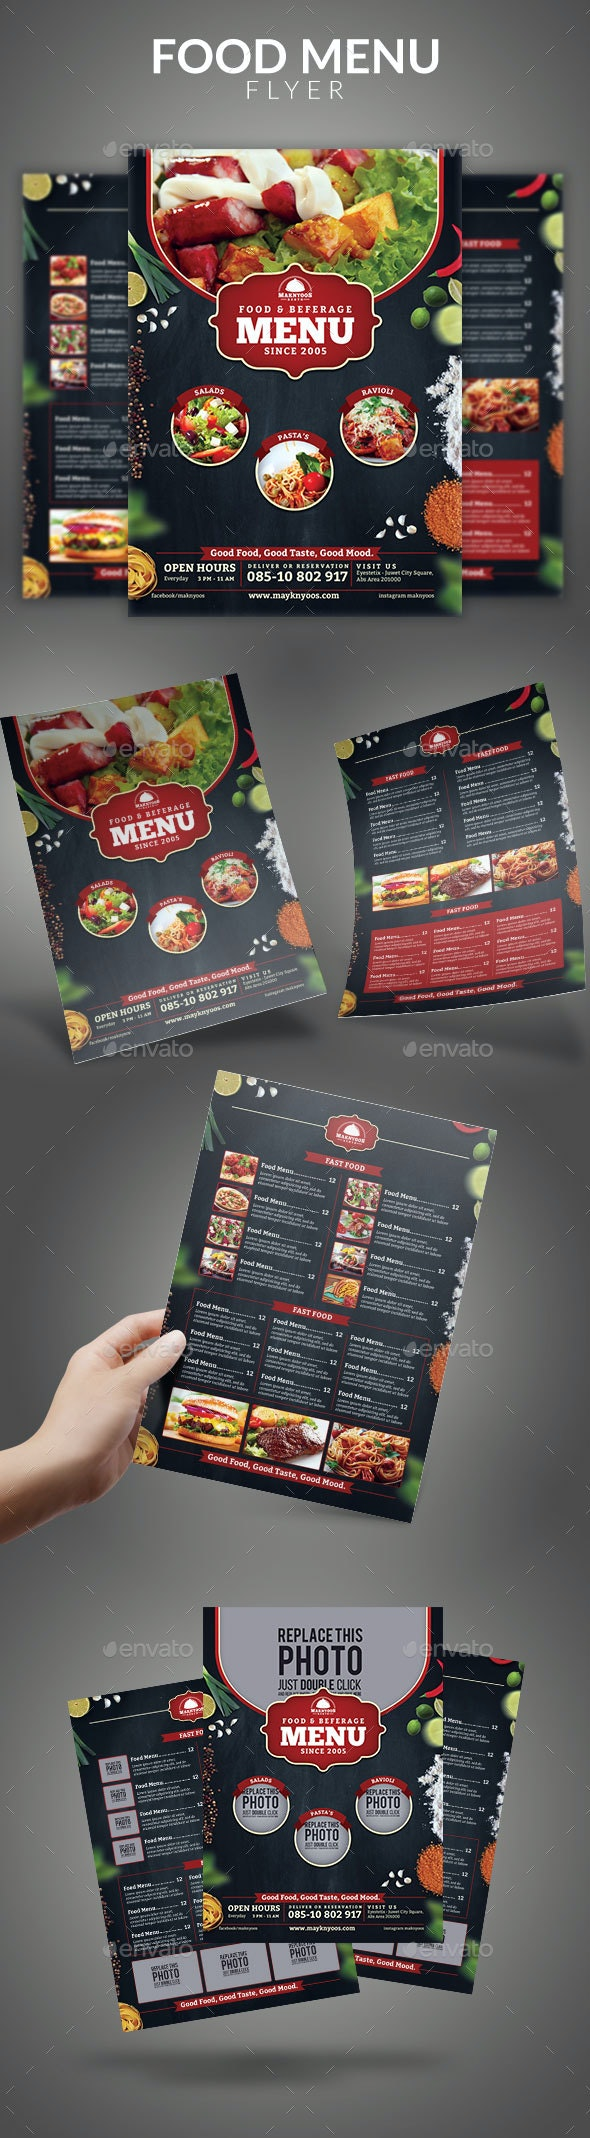 Food Menu Flyer - Food Menus Print Templates